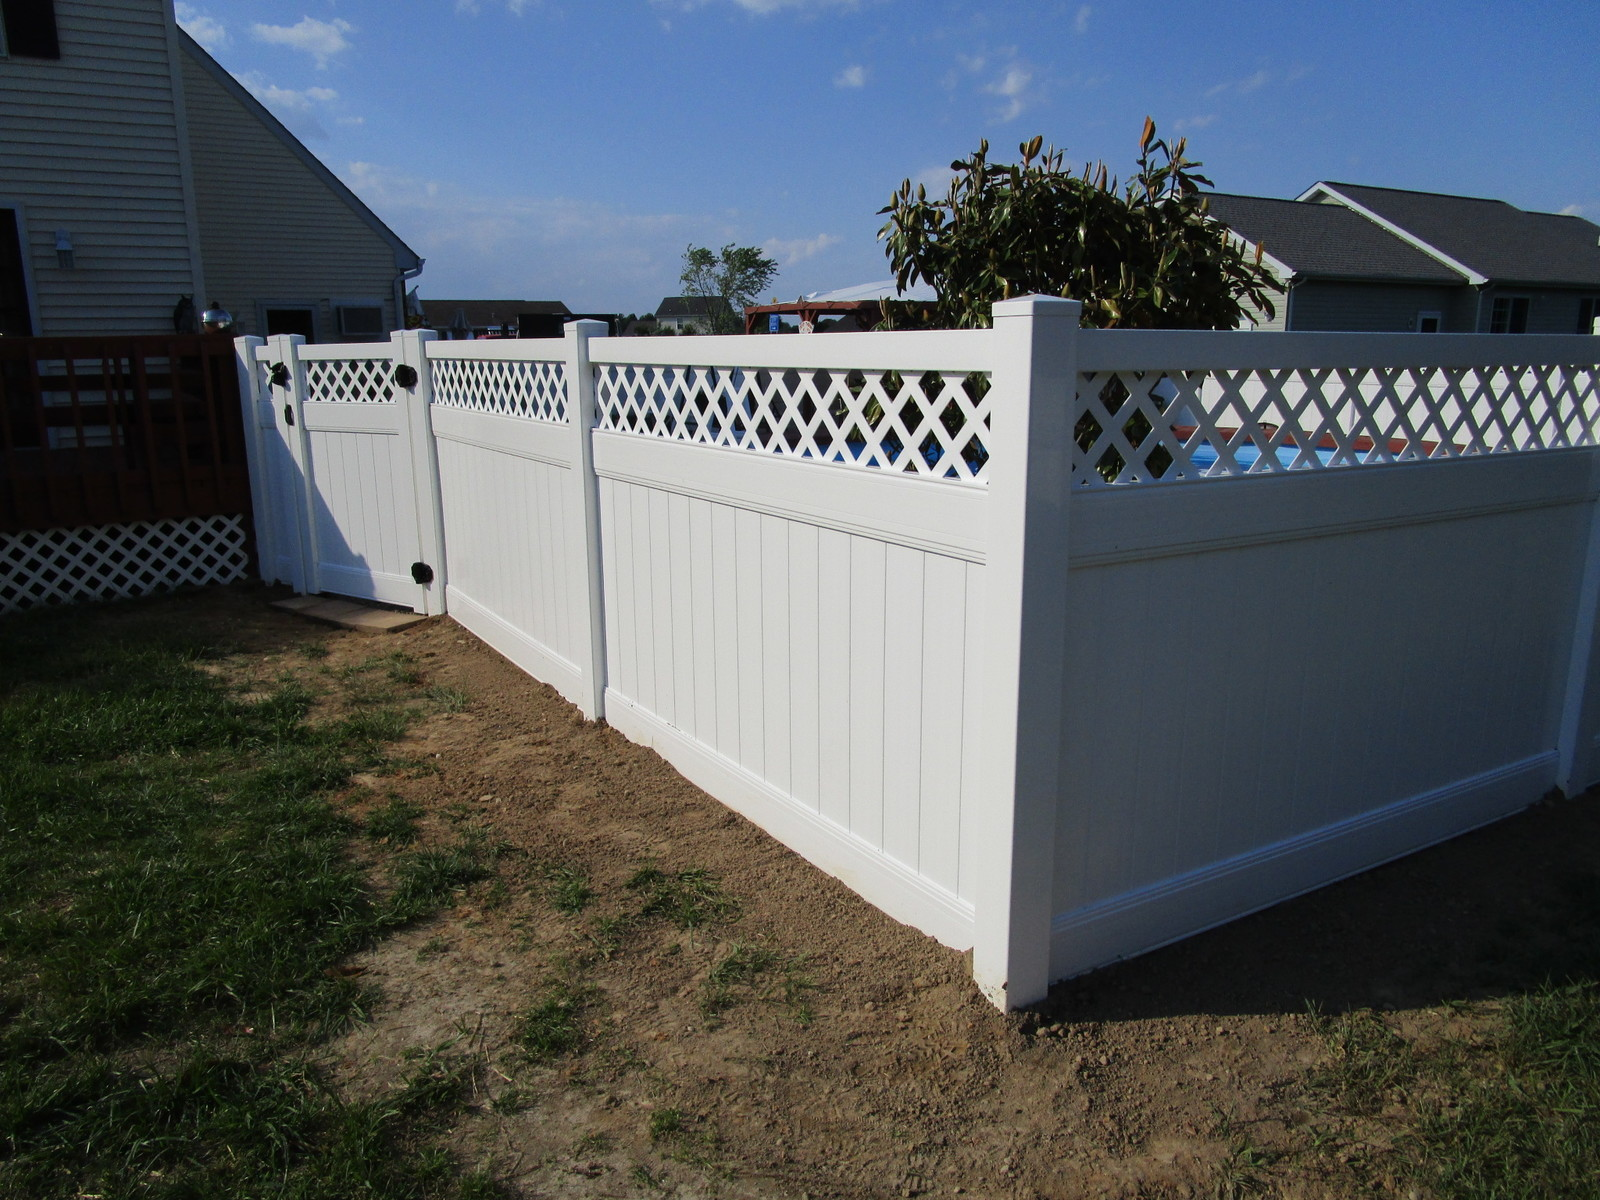 Vinyl forrest fencing 110privacy with lattice top langhornejpg vinyl forrest fencing privacy baanklon Choice Image